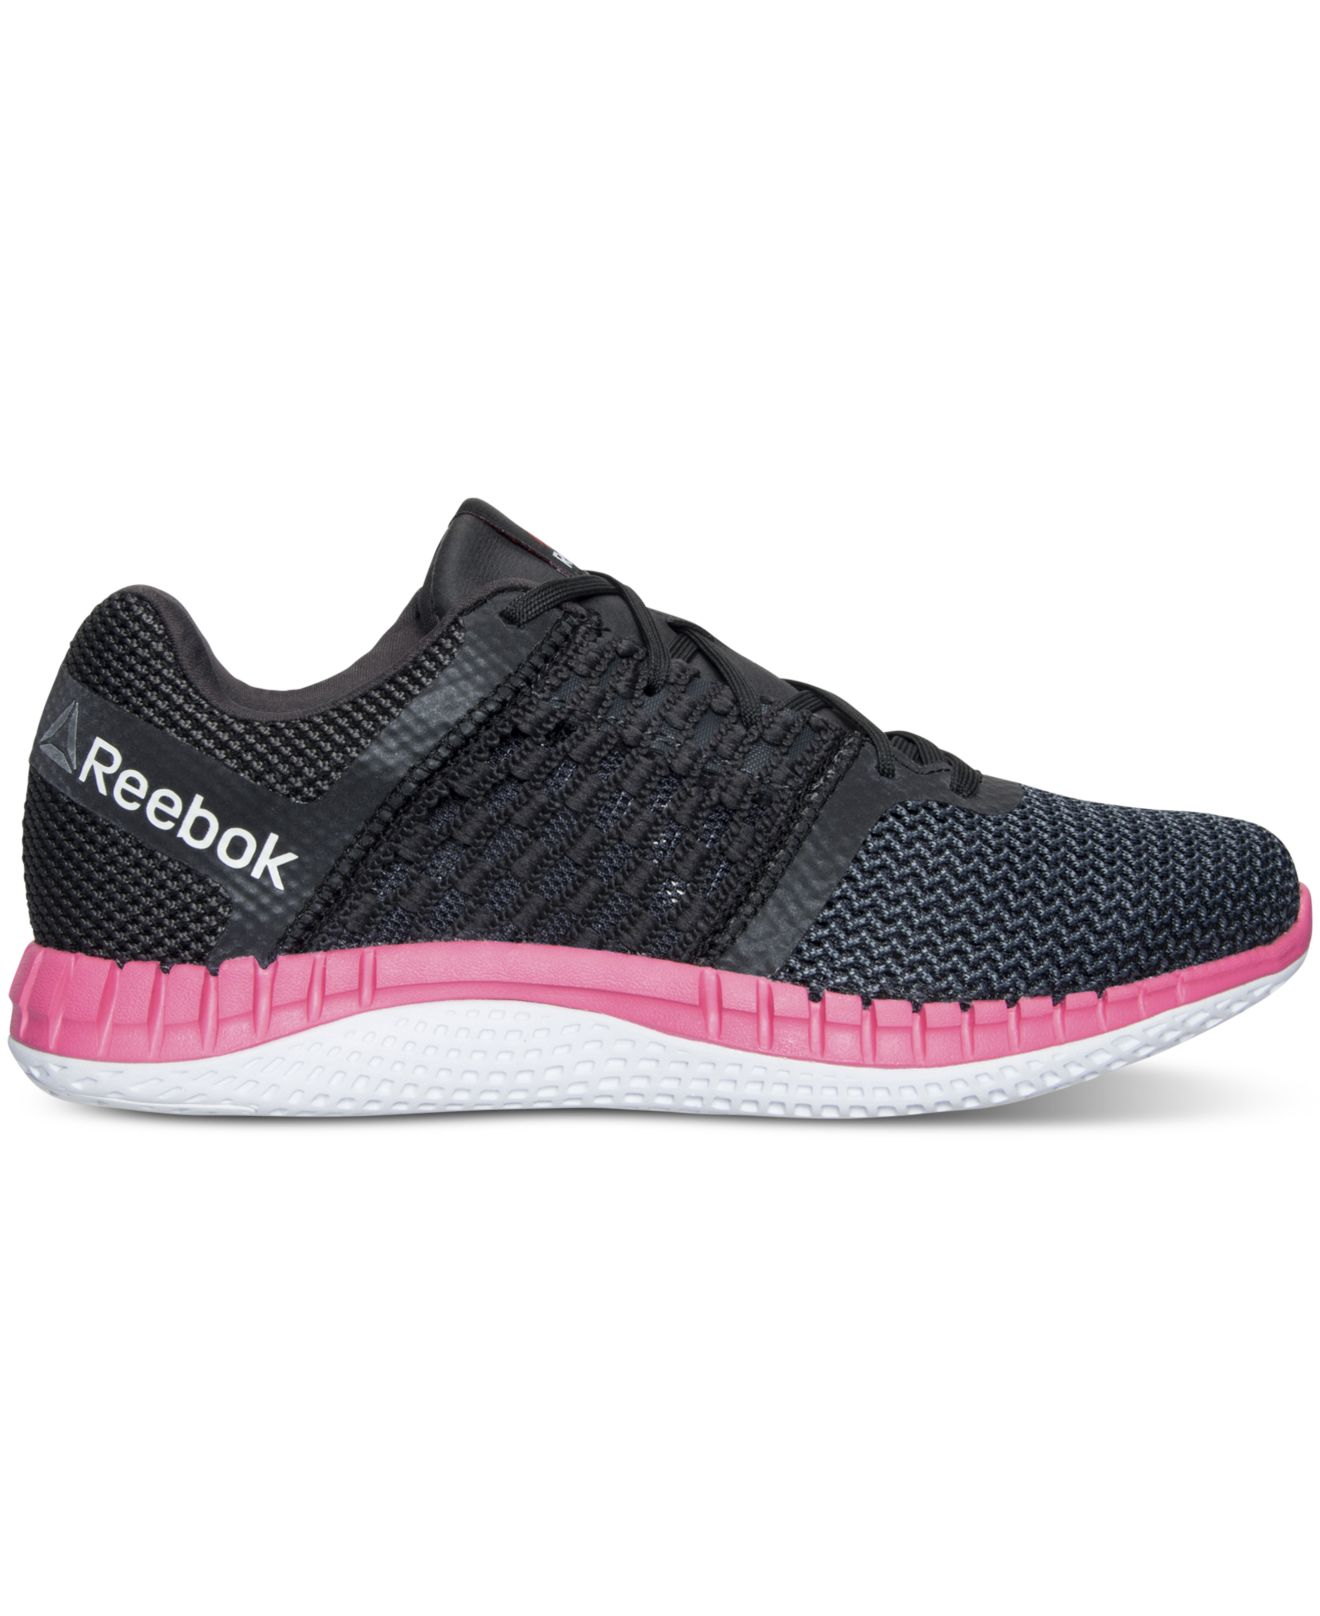 Lyst - Reebok Women s Zprint Running Sneakers From Finish Line in Black 781f0f701